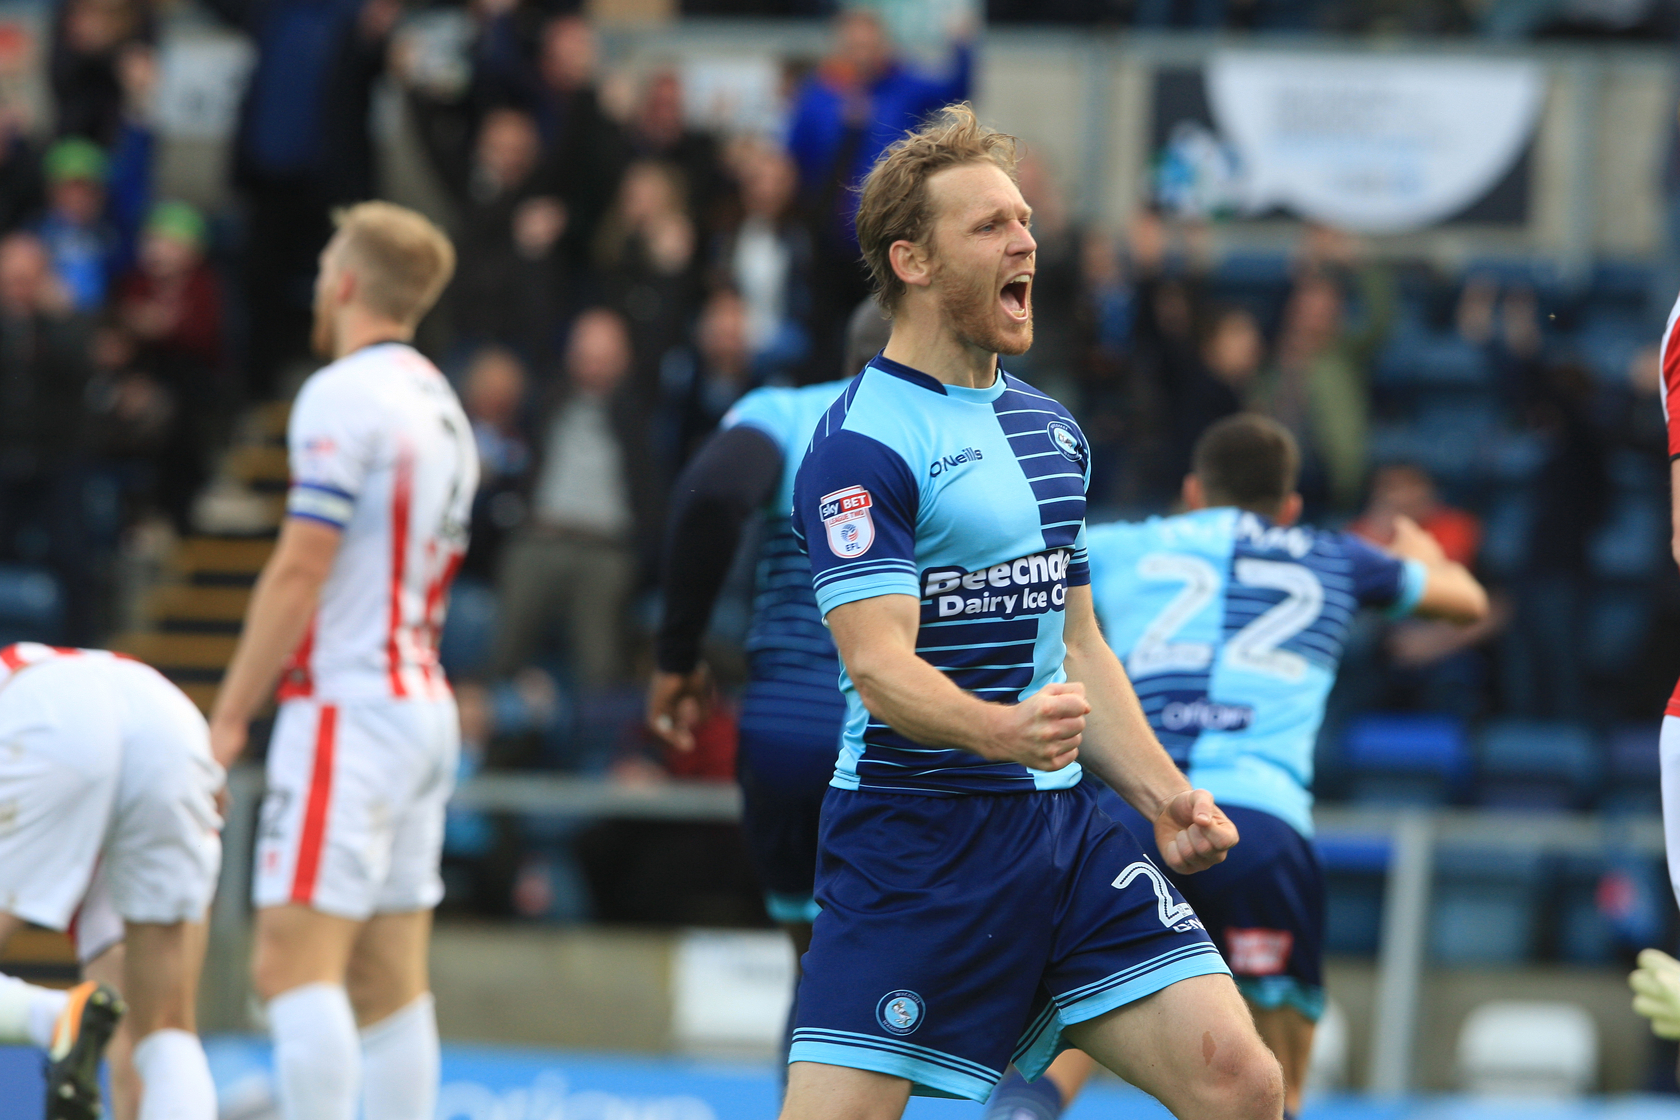 Mackail-Smith scored the all important second goal at against Leatherhead